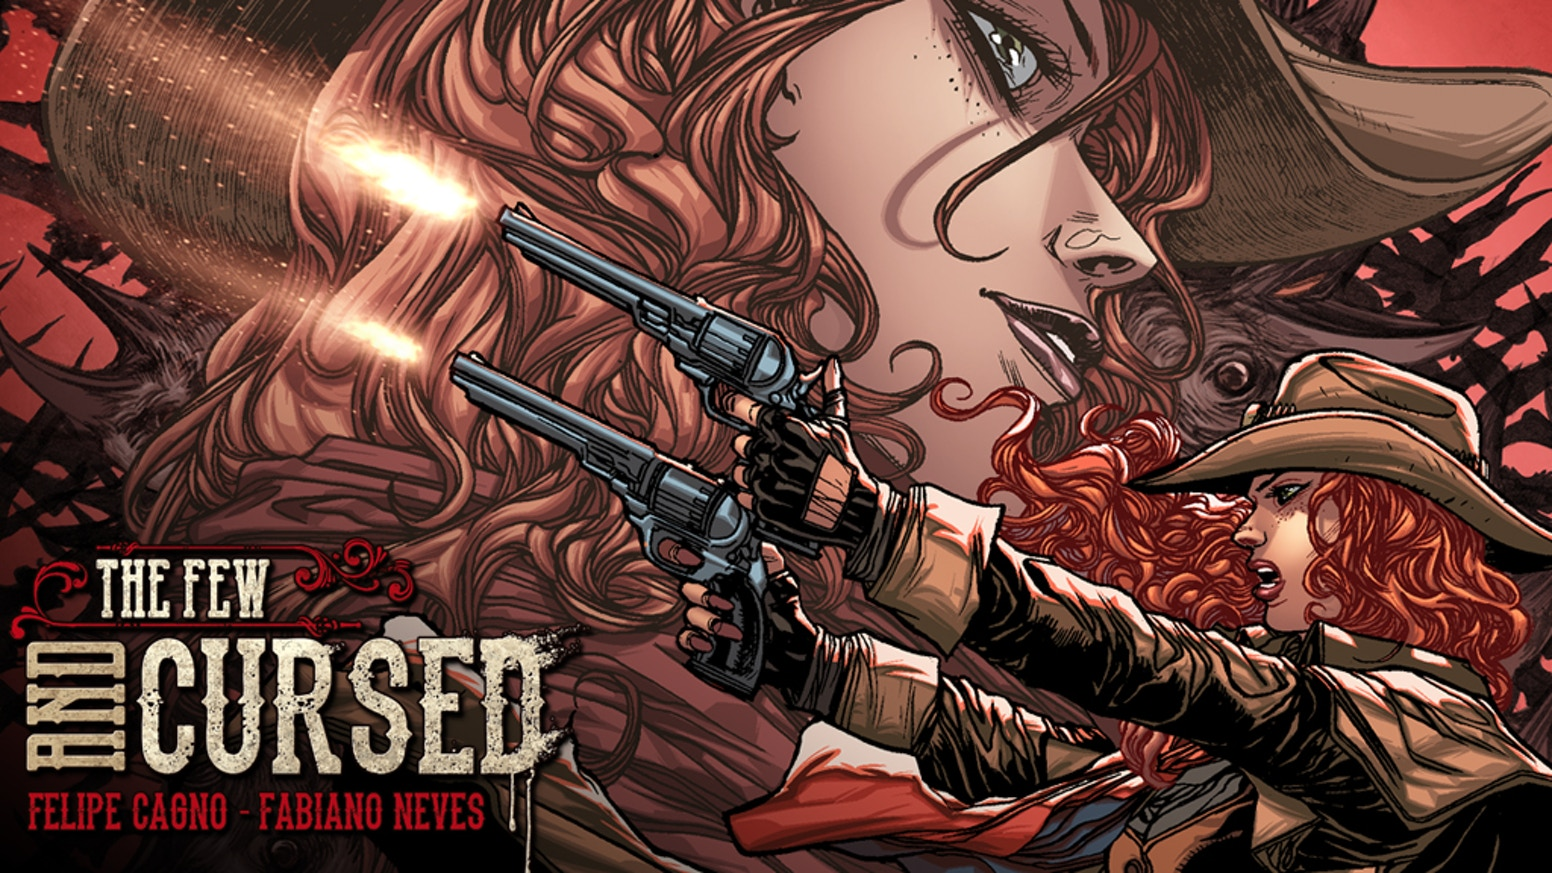 Join the Redhead in her hunt for The Crows of Mana'Olana in this epic supernatural western. Issues #1 and #2 also available!